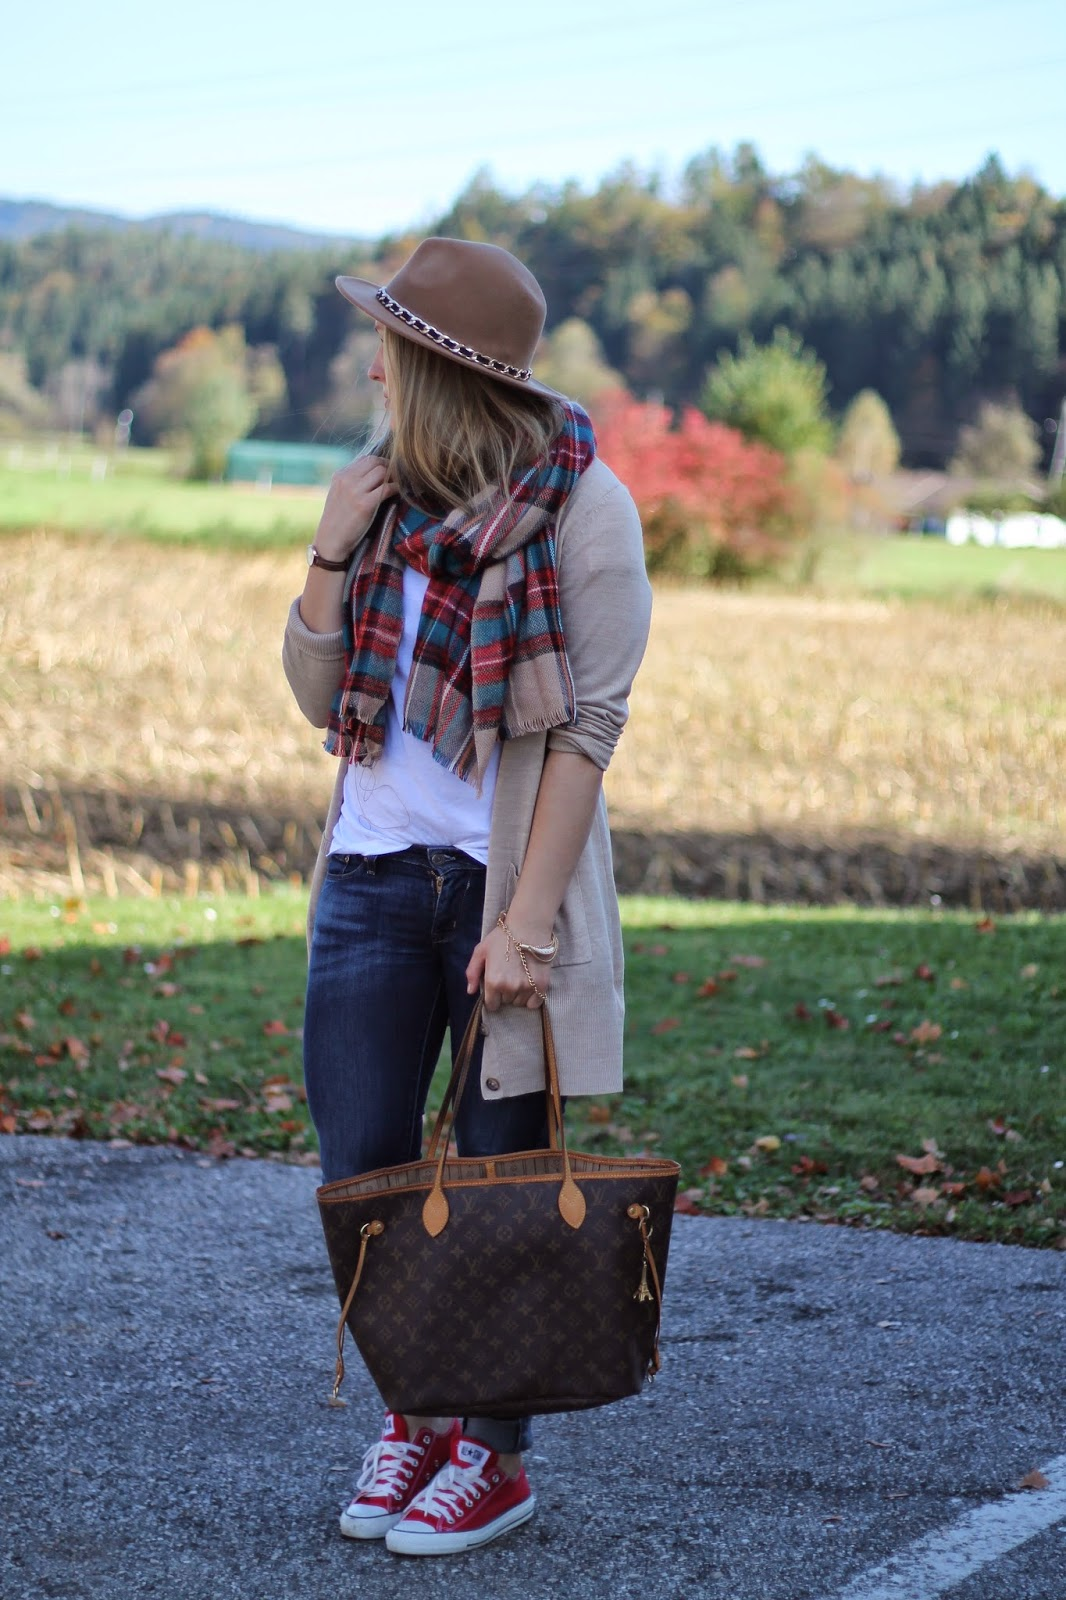 Fashionblogger Austria / Österreich / Deutsch / German / Kärnten / Carinthia / Klagenfurt / Köttmannsdorf / Spring Look / Classy / Edgy / Autumn / Autumn Style 2014 / Autumn Look / Fashionista Look / Beide Cardigan H&M / White Oversize Shirt H&M / Zara Beige Hat HUt / Louis vuitton Neverfull Monogram Canvas MM / Asos Scarf Checked Blogger Must Have / Daniel Wellington Watch / Red Converse /